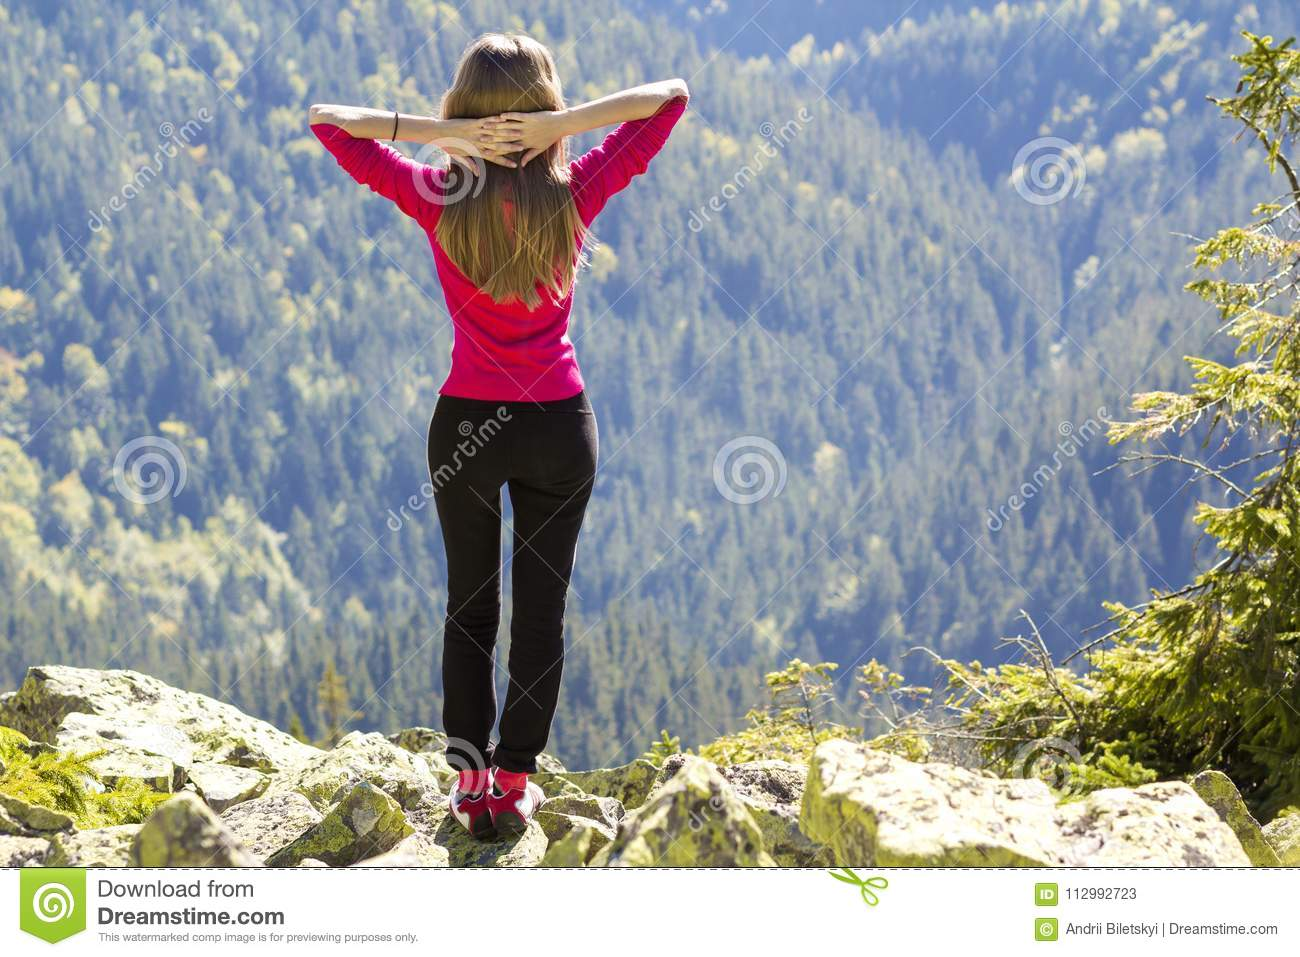 Silhouette of a young happy beautiful slim girl in red sweater standing on big rocks in mountains lifting hands. Tourism and trave